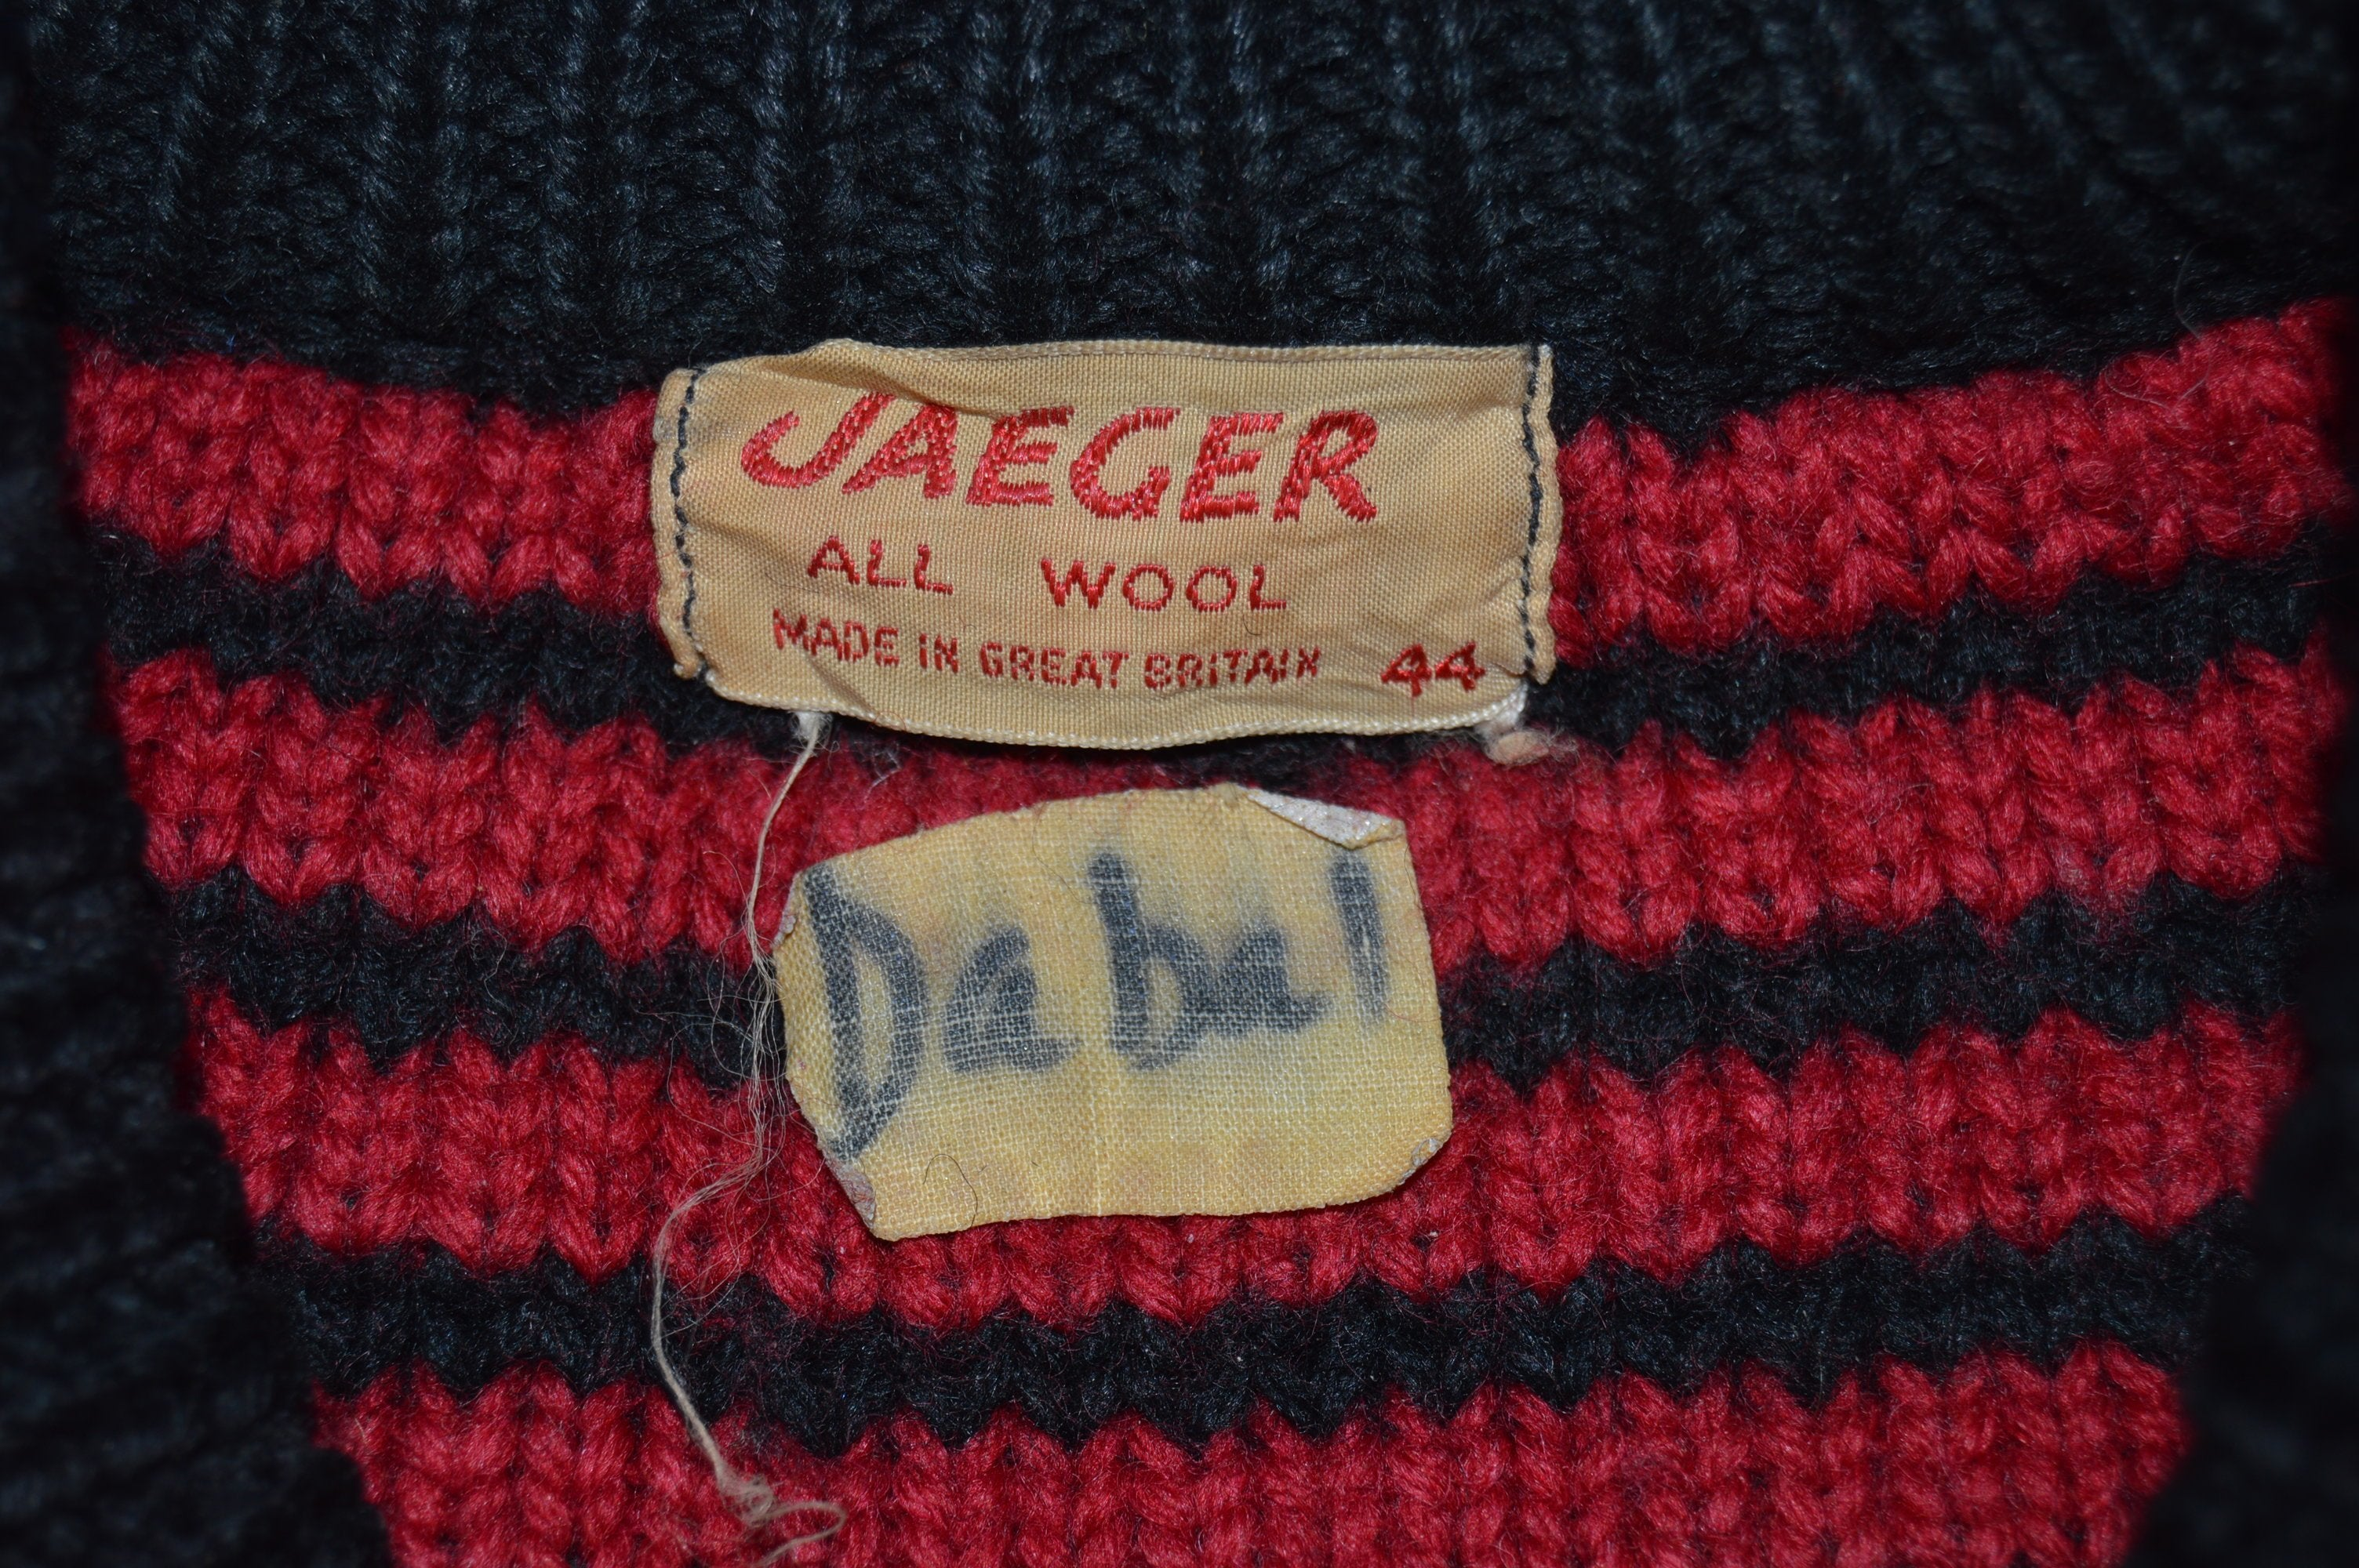 40s Jaeger All Wool Knit Raglan Sweater Large The Captains Vintage